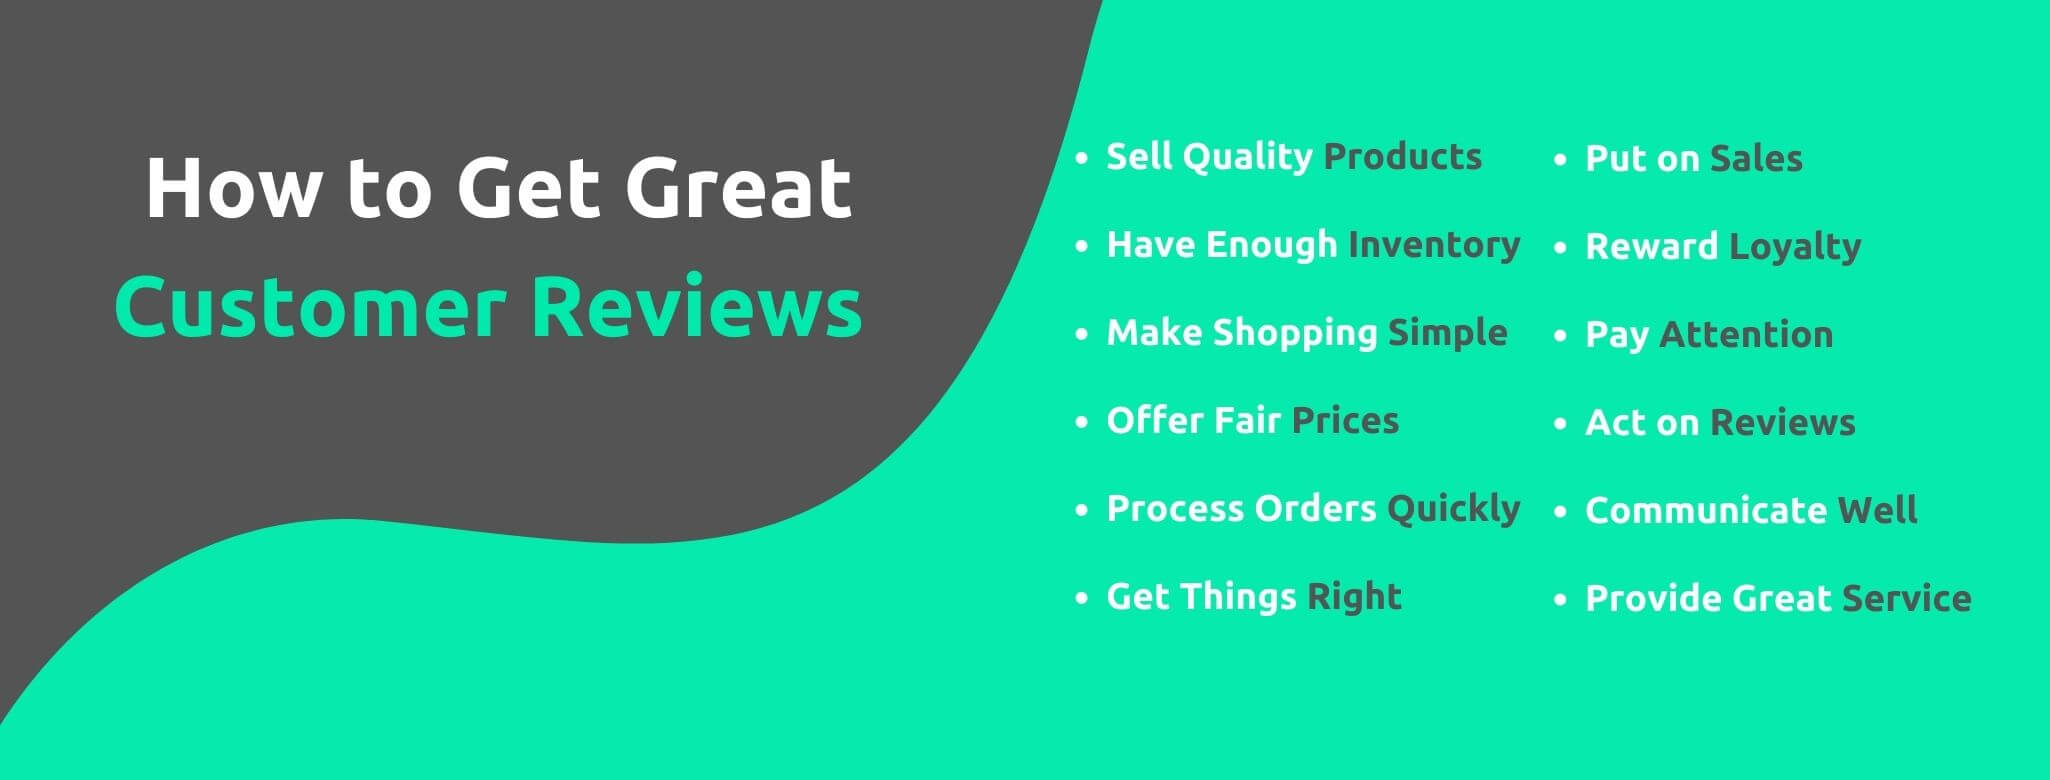 How to Get Great Customer Reviews - How to Get Great Customer Reviews - Replyco Helpdesk Software for eCommerce